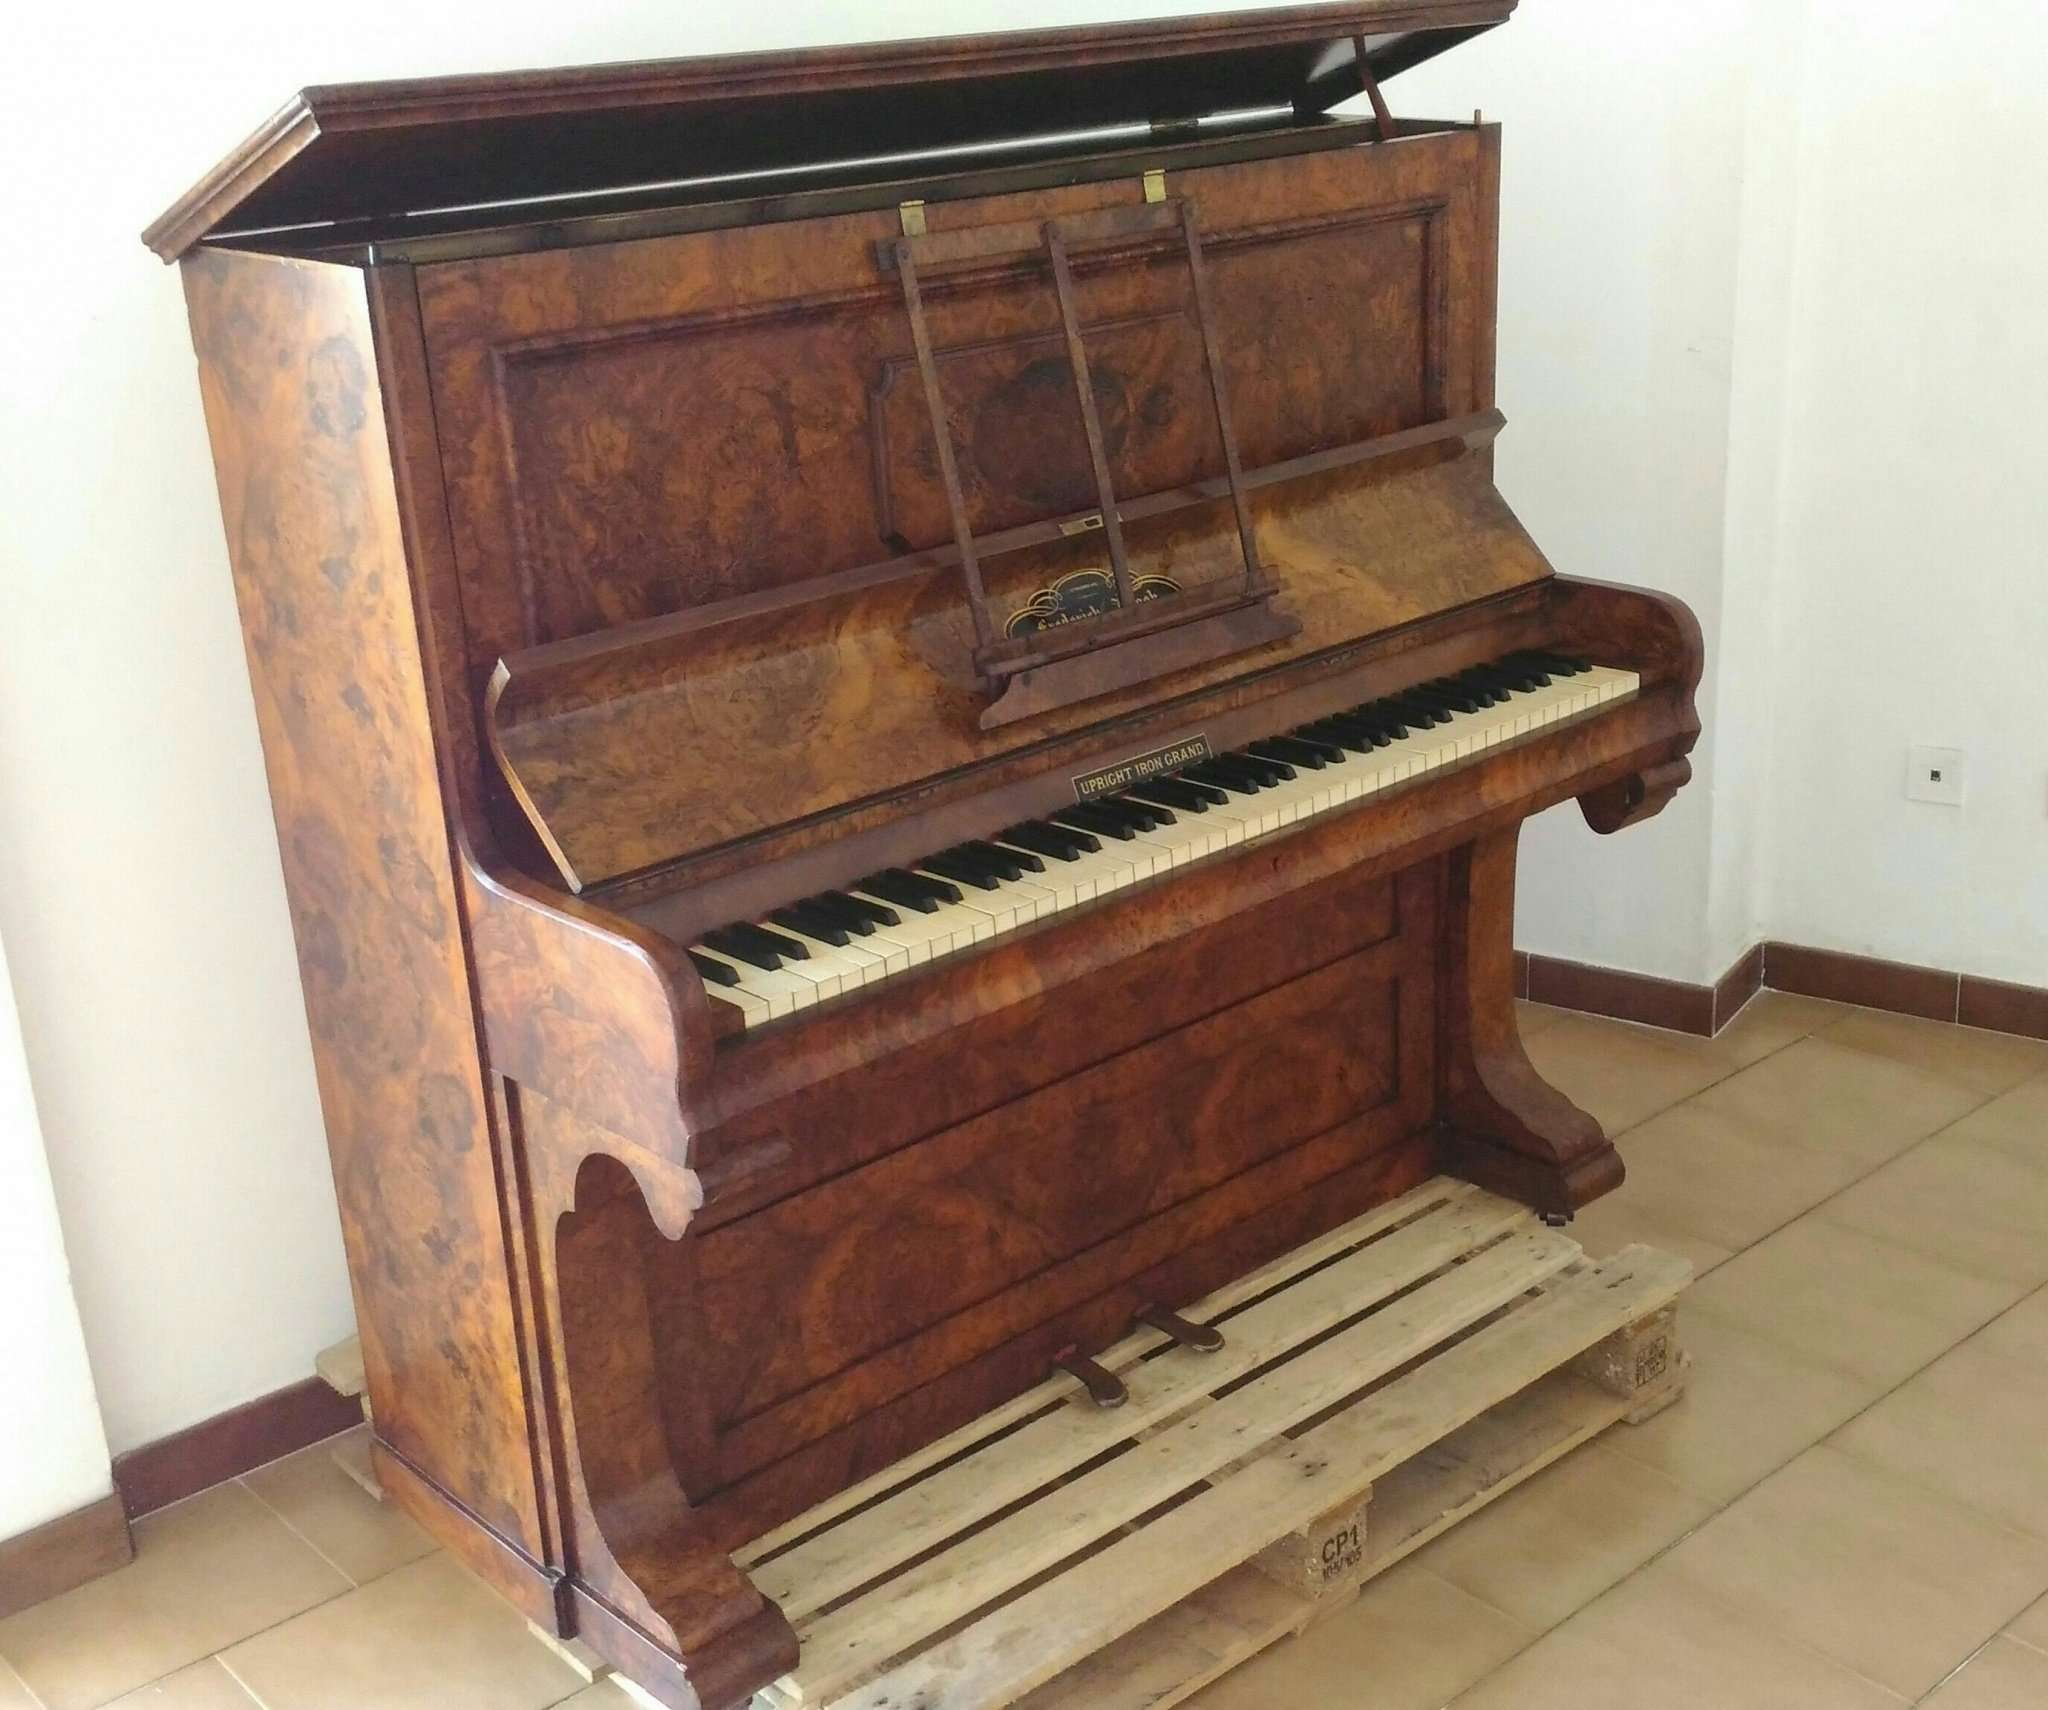 Piano vertical Frederick Reogh, 1870, Londres